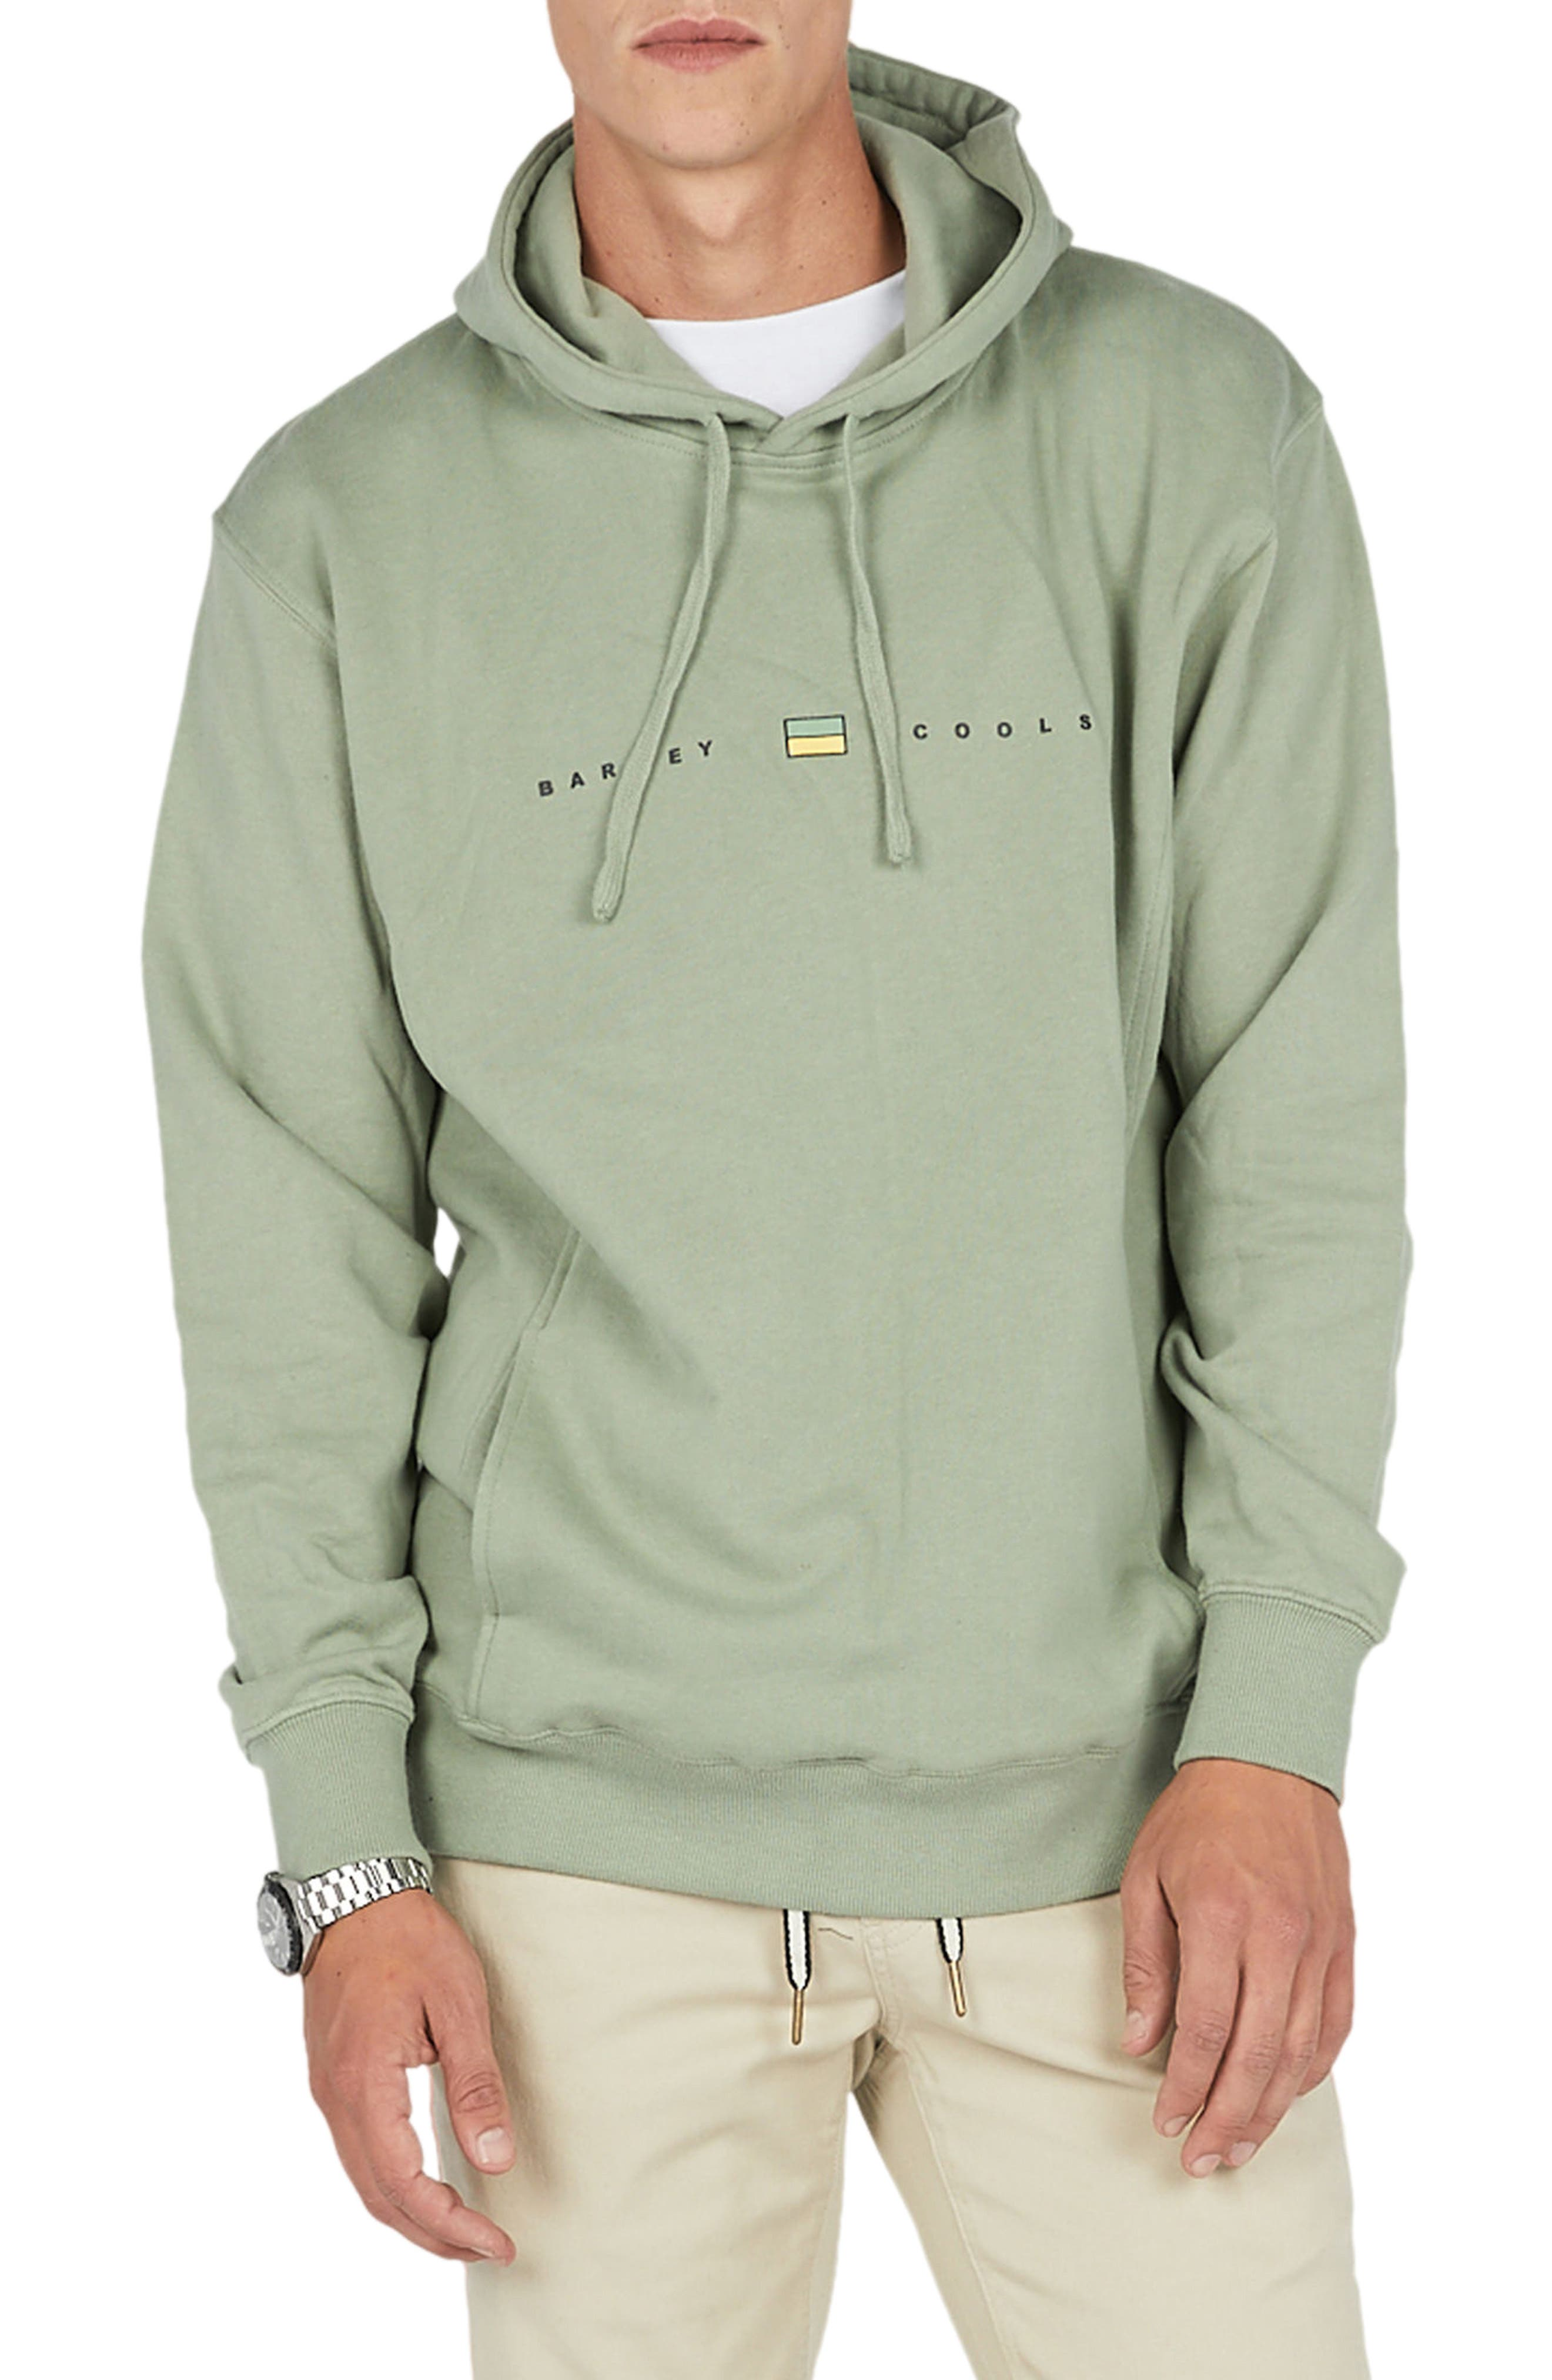 B. Cause Hoodie,                             Main thumbnail 1, color,                             Seagrass